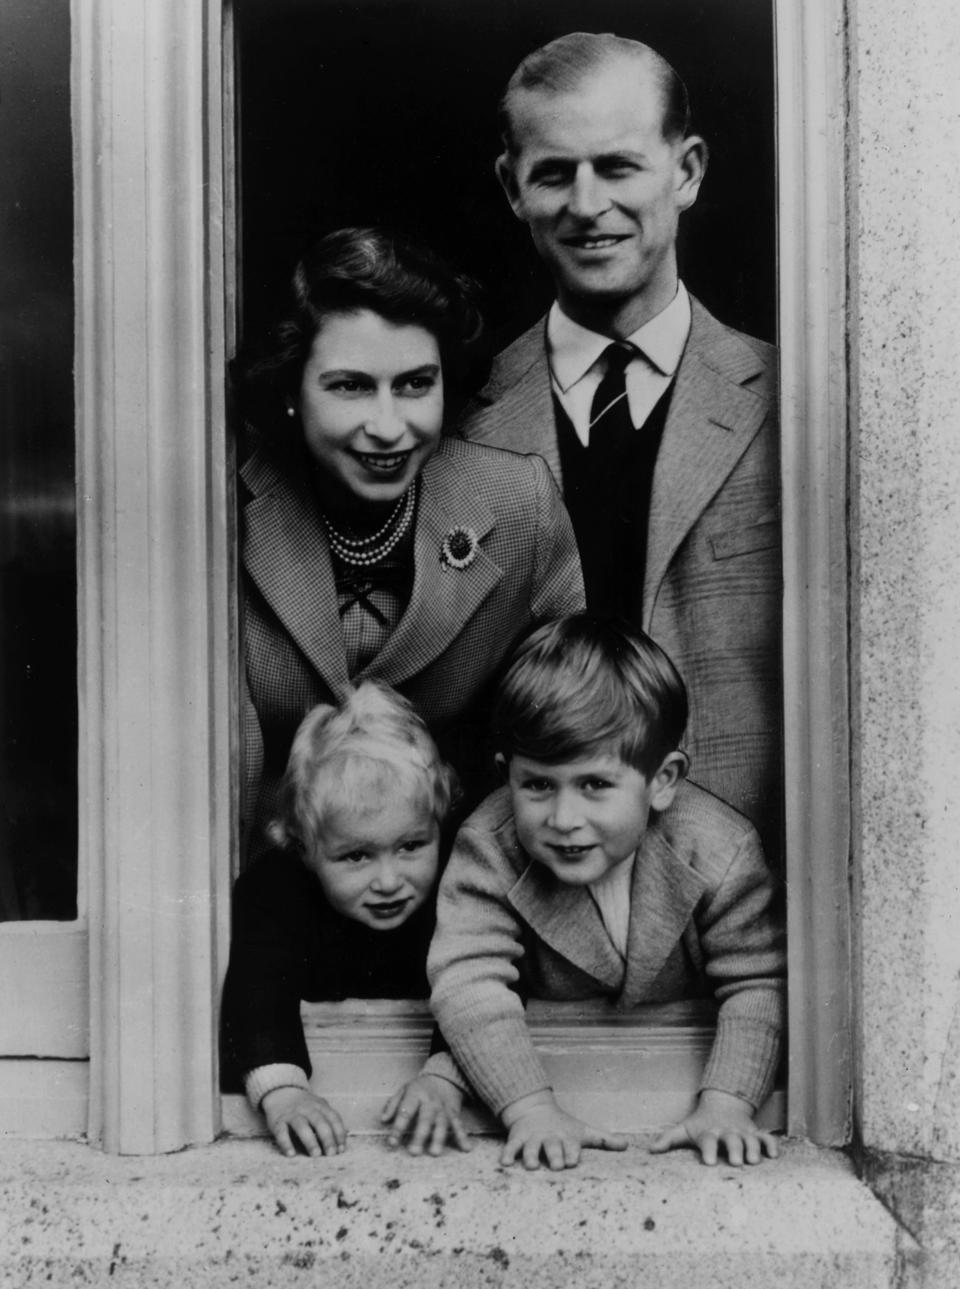 Queen Elizabeth, Prince Philip, and their children, Charles and Anne 1952